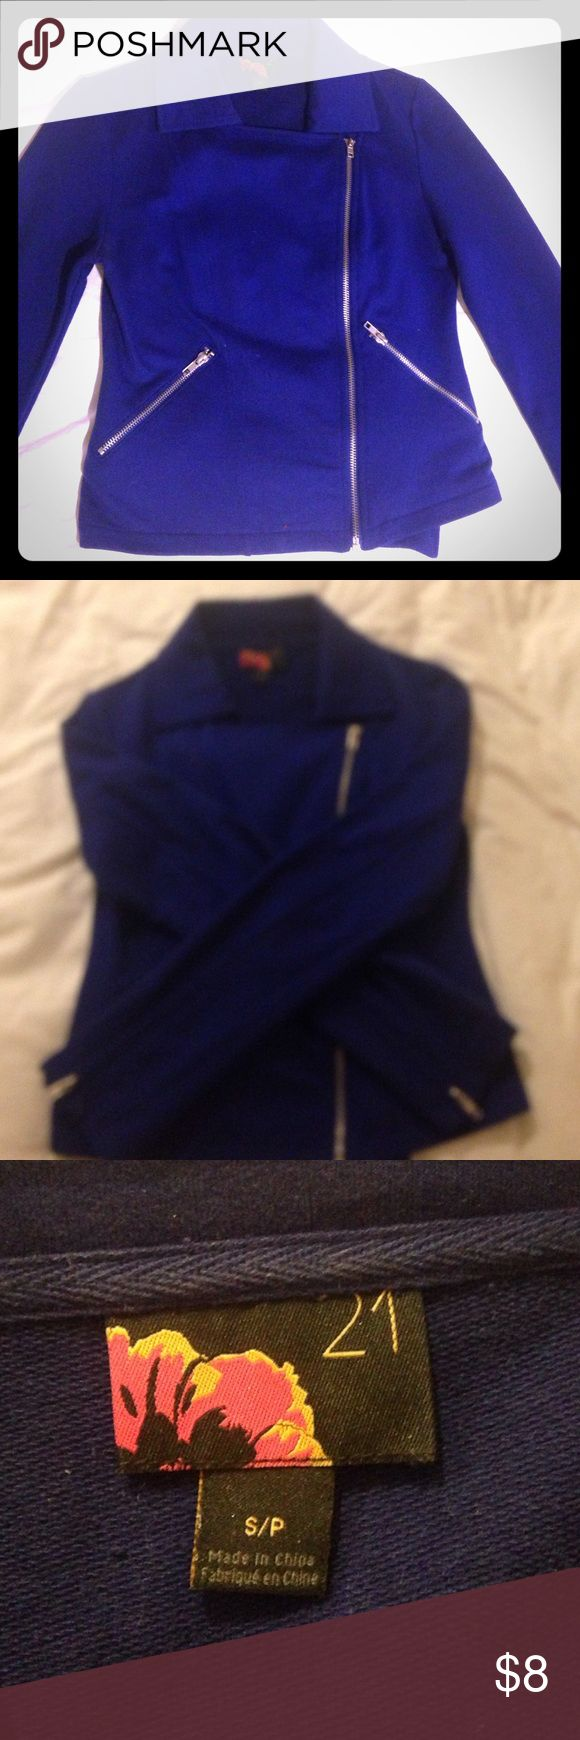 Royal blue zip-up sweater Rich, royal blue zip-up sweater/blazer. It has two pockets that zip up and zippers in each sleeve. Like new! Forever 21 Jackets & Coats Blazers